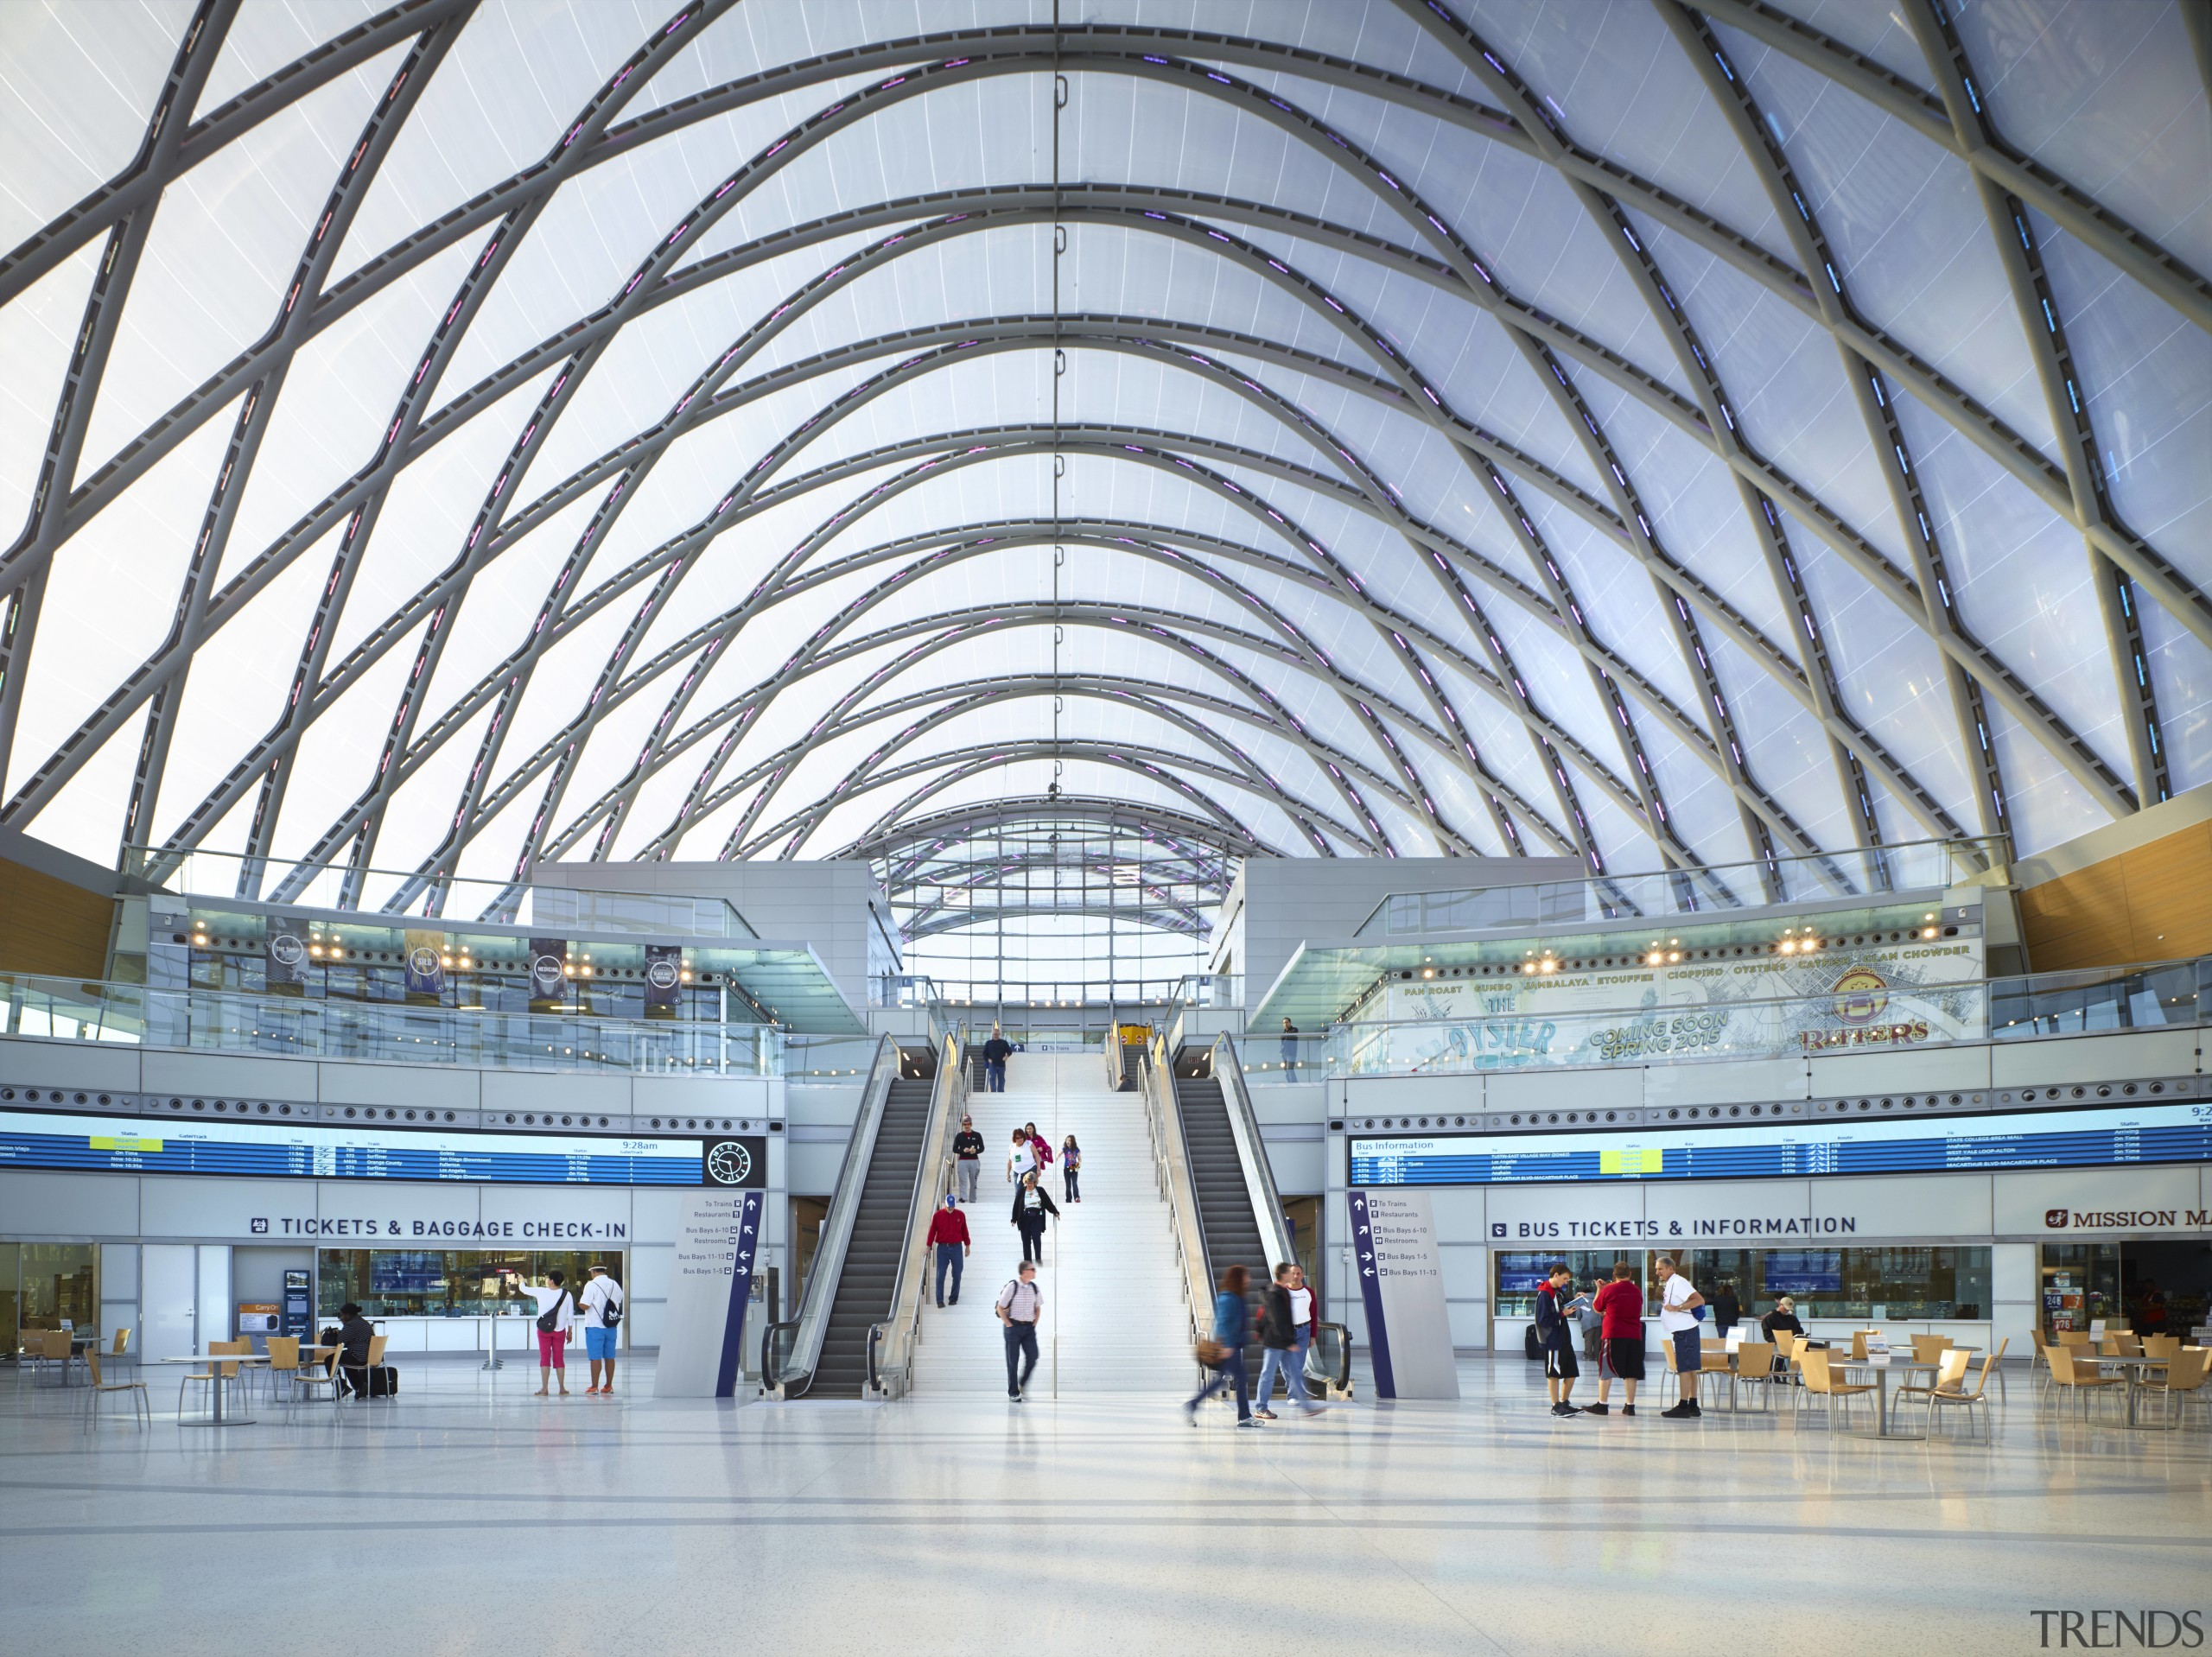 The new ARTIC transit hub in Anaheim is airport, airport terminal, architecture, building, daylighting, infrastructure, metropolis, metropolitan area, shopping mall, structure, white